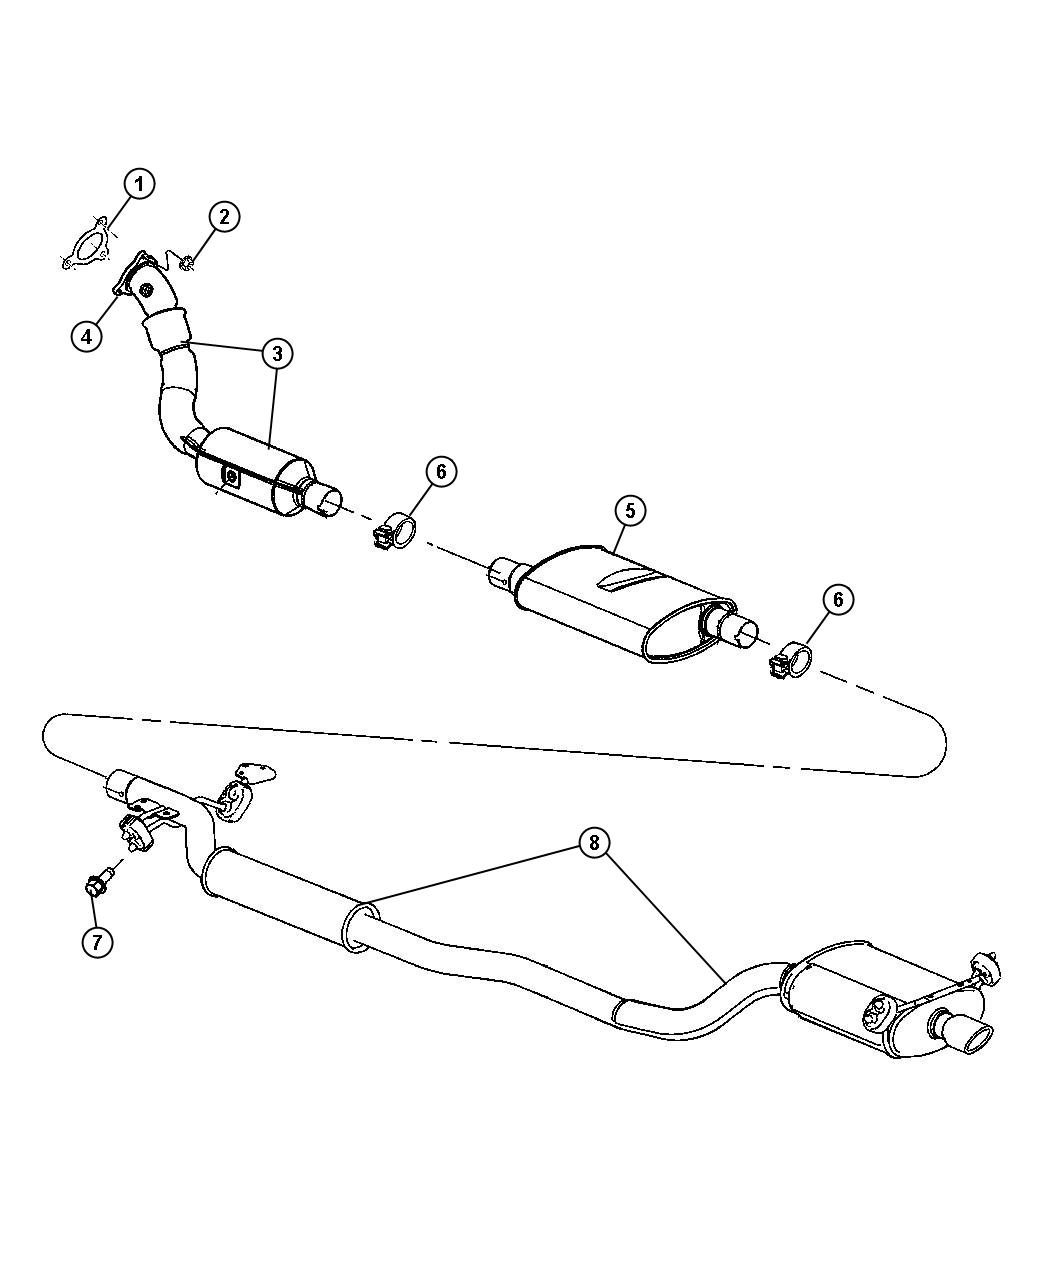 Jeep Compass Muffler Used For Muffler And Tailpipe